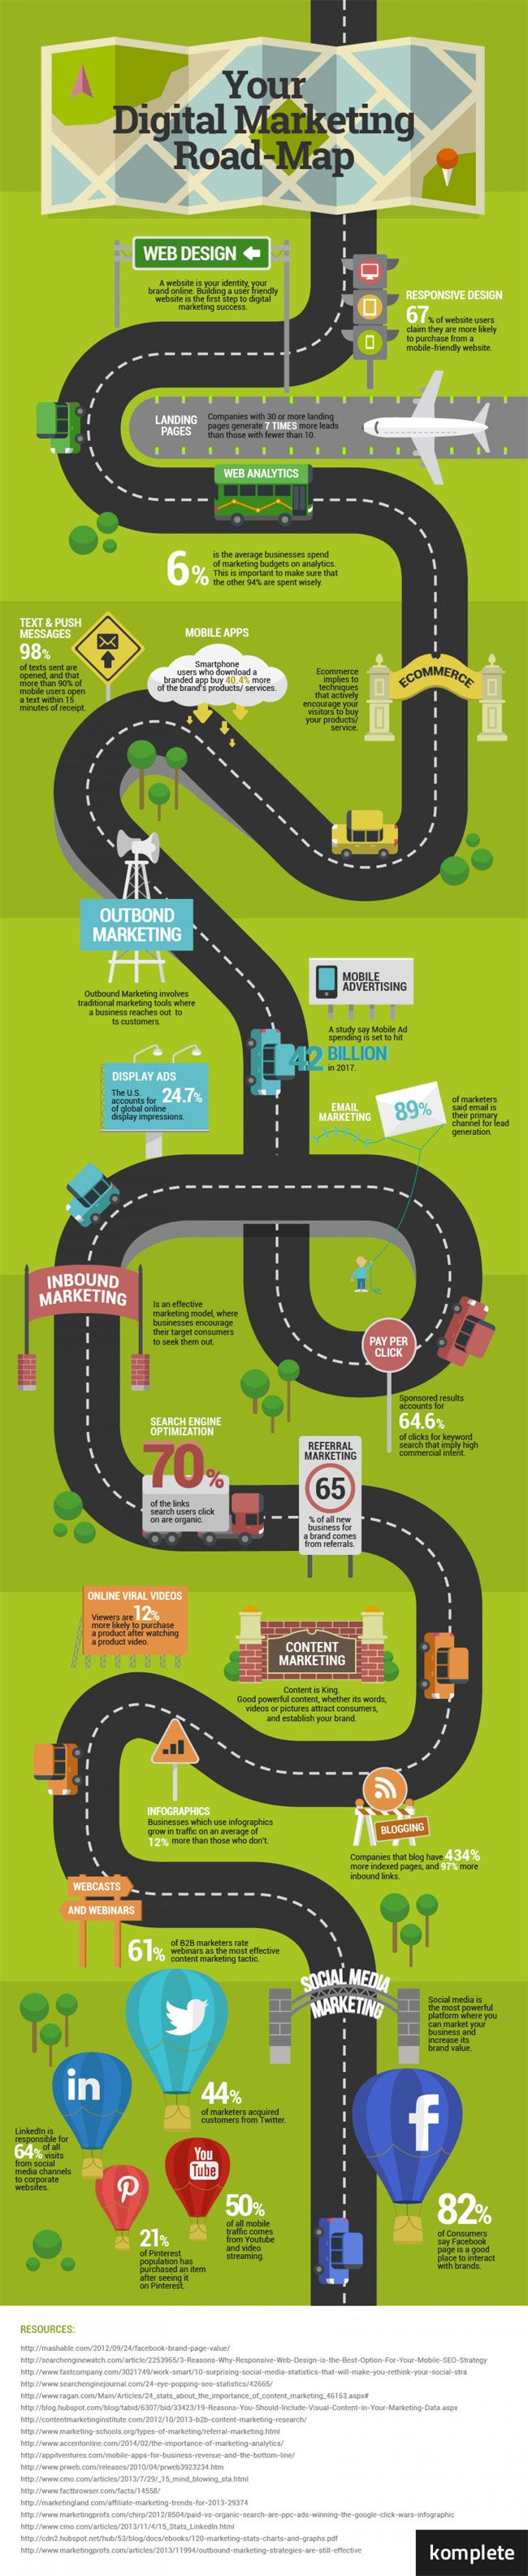 #DigitalMarketing Roadmap #Infographic